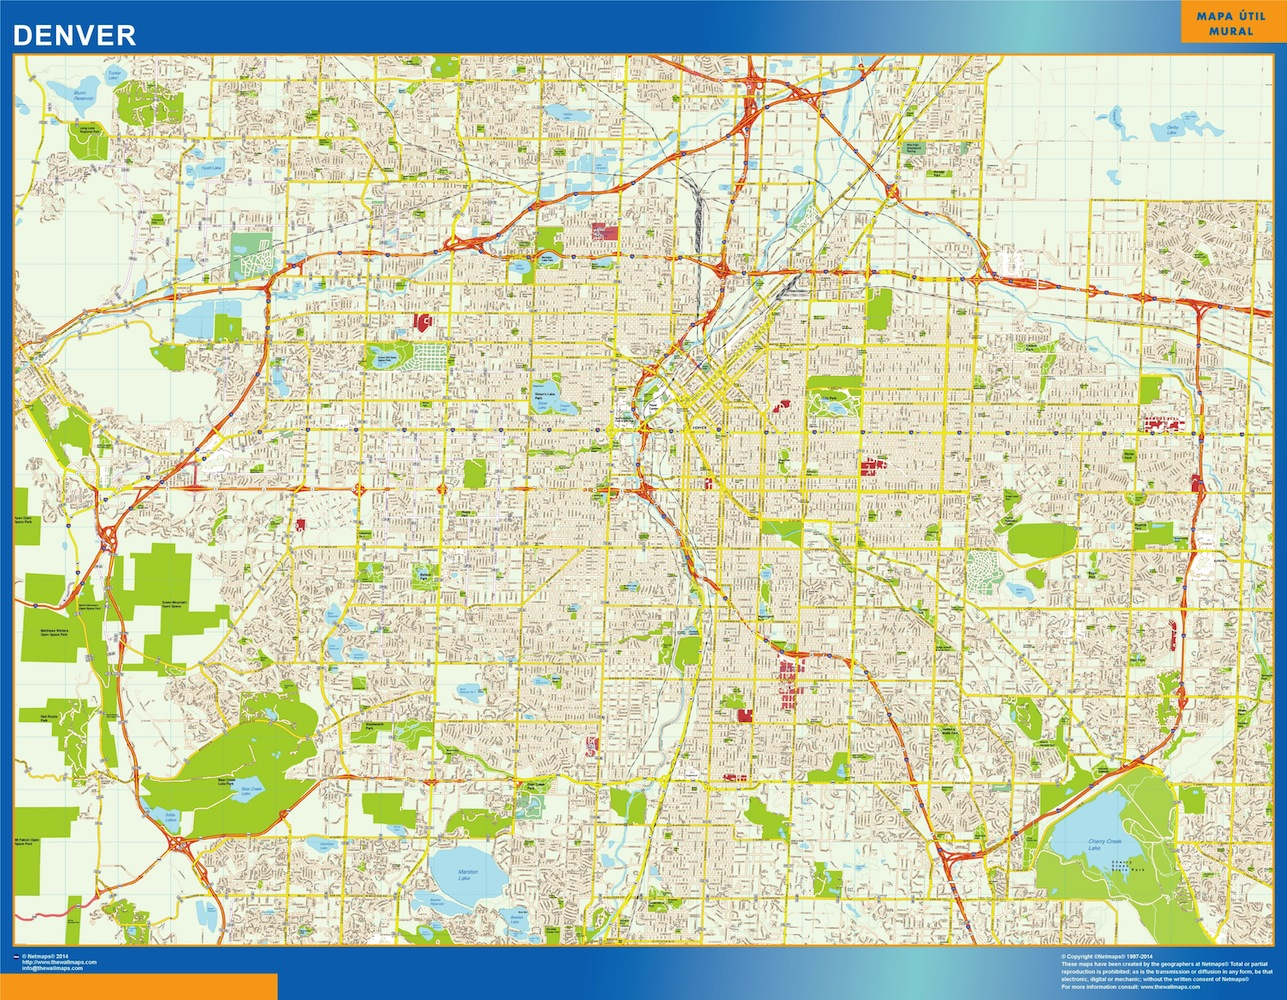 World Wall Maps Store: denver street map . More than 10 000 maps ...